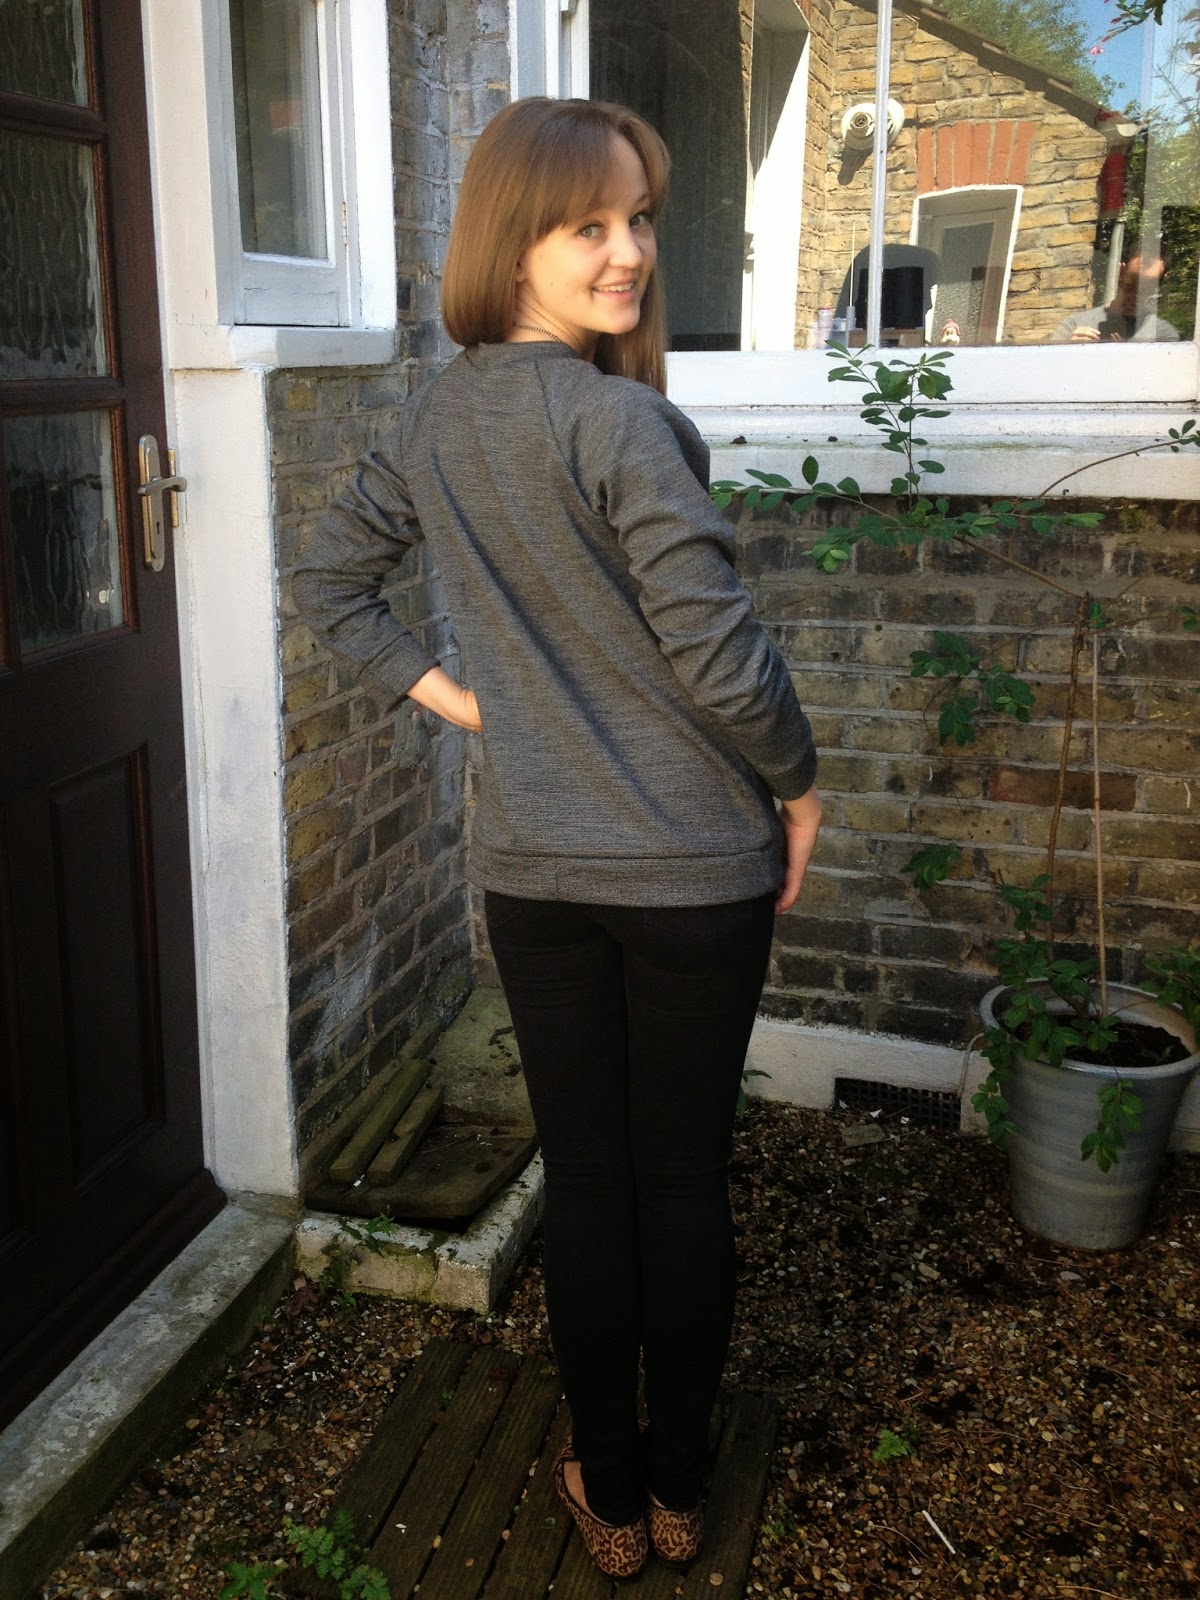 Diary of a Chainstitcher: The White Russian Sweatshirt from Capital Chic Sewing Patterns